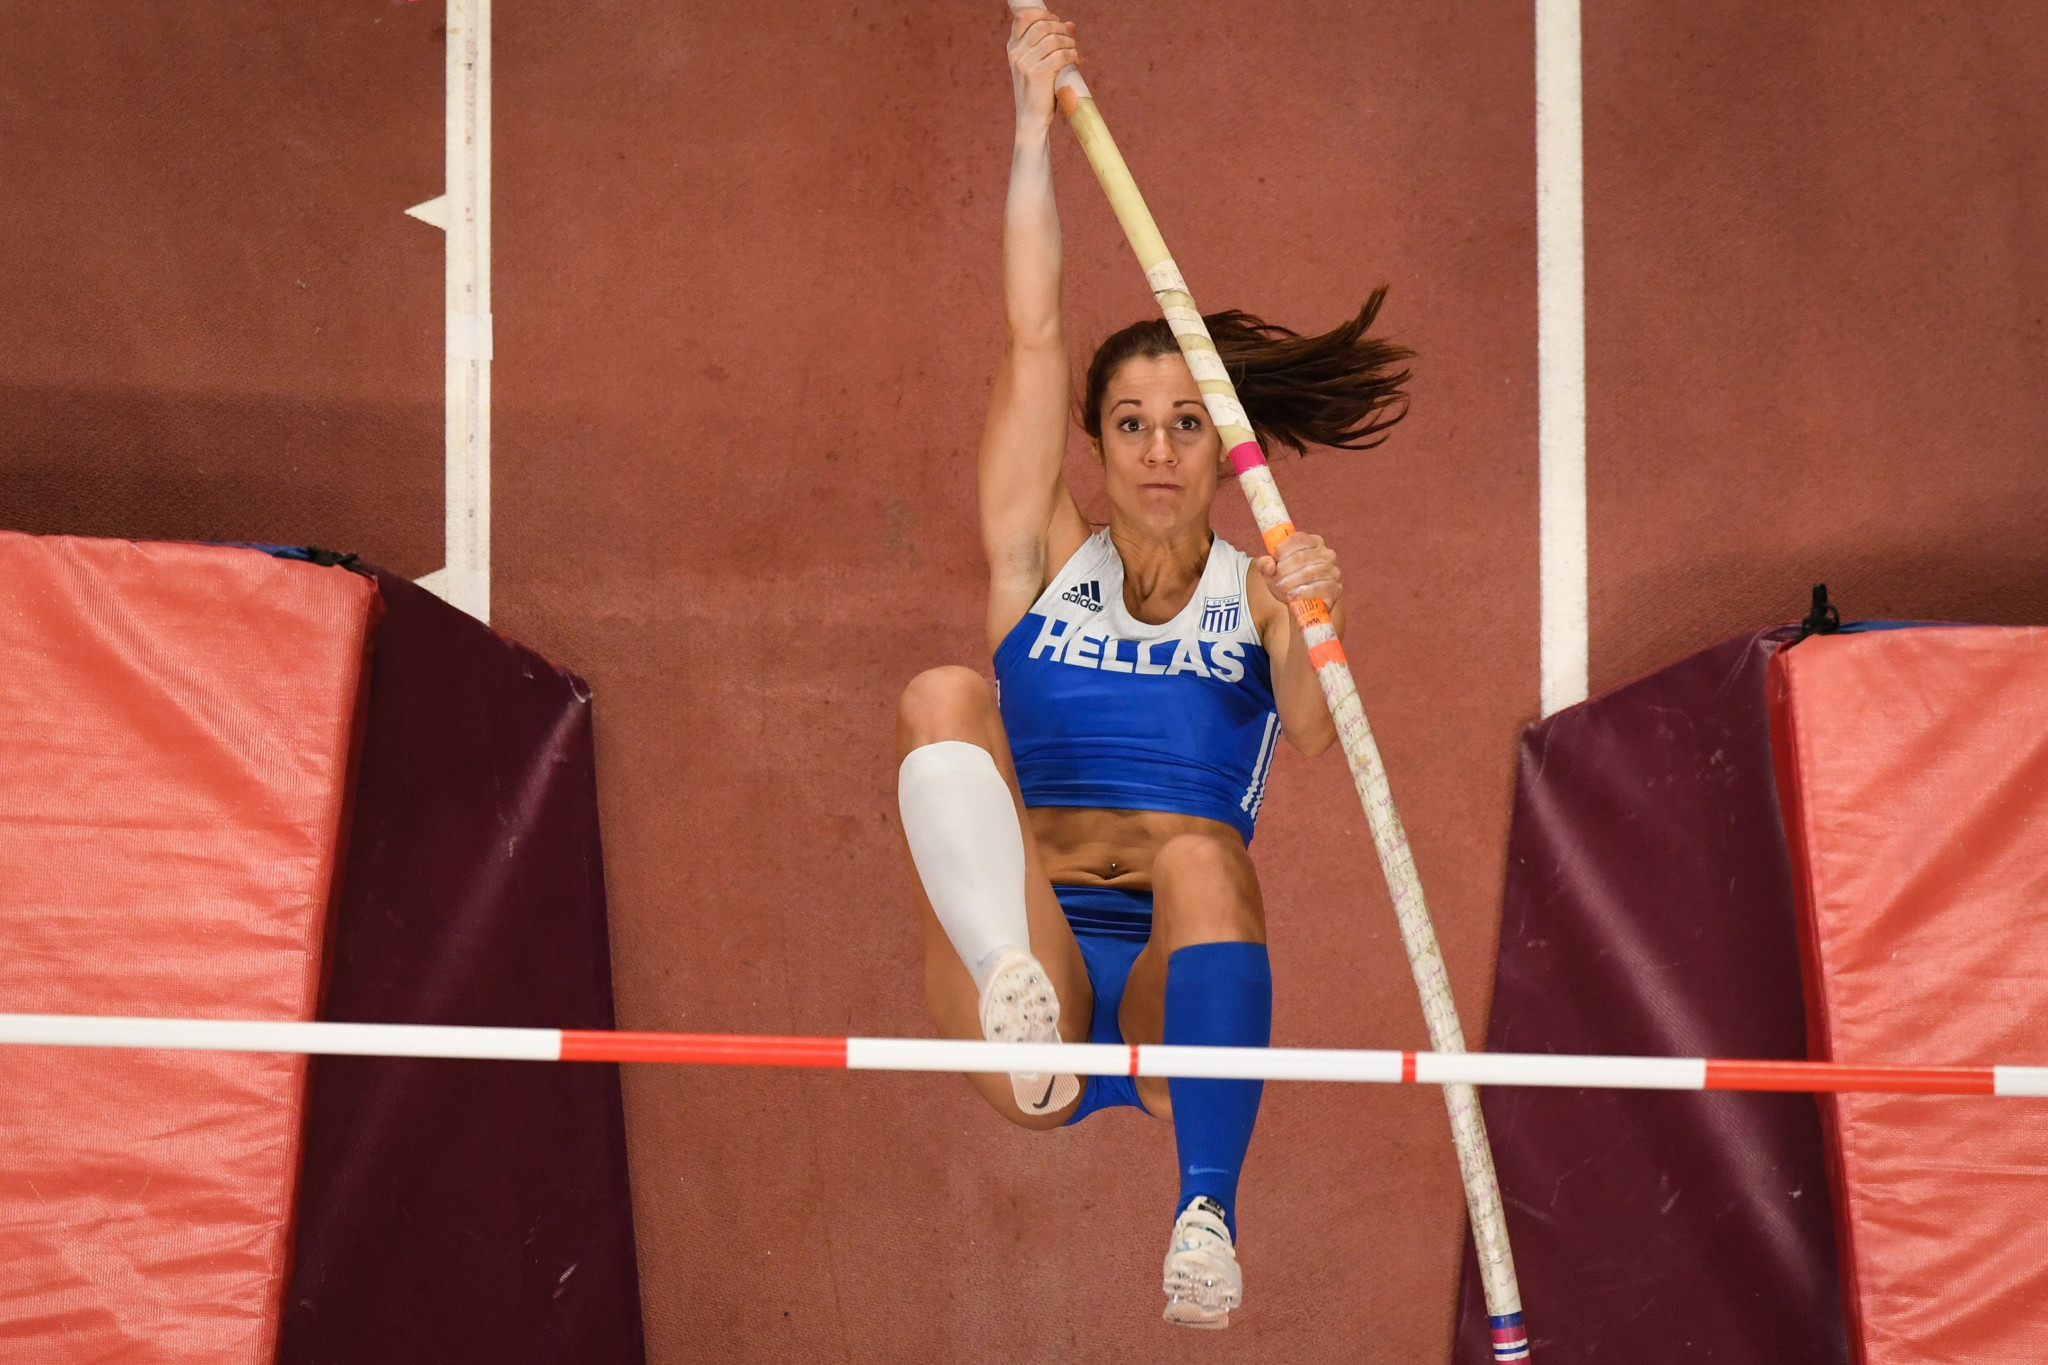 Greek pole vaulting star Katerina Stefanidi called on athletes to make the right decision during the vote ©Getty Images